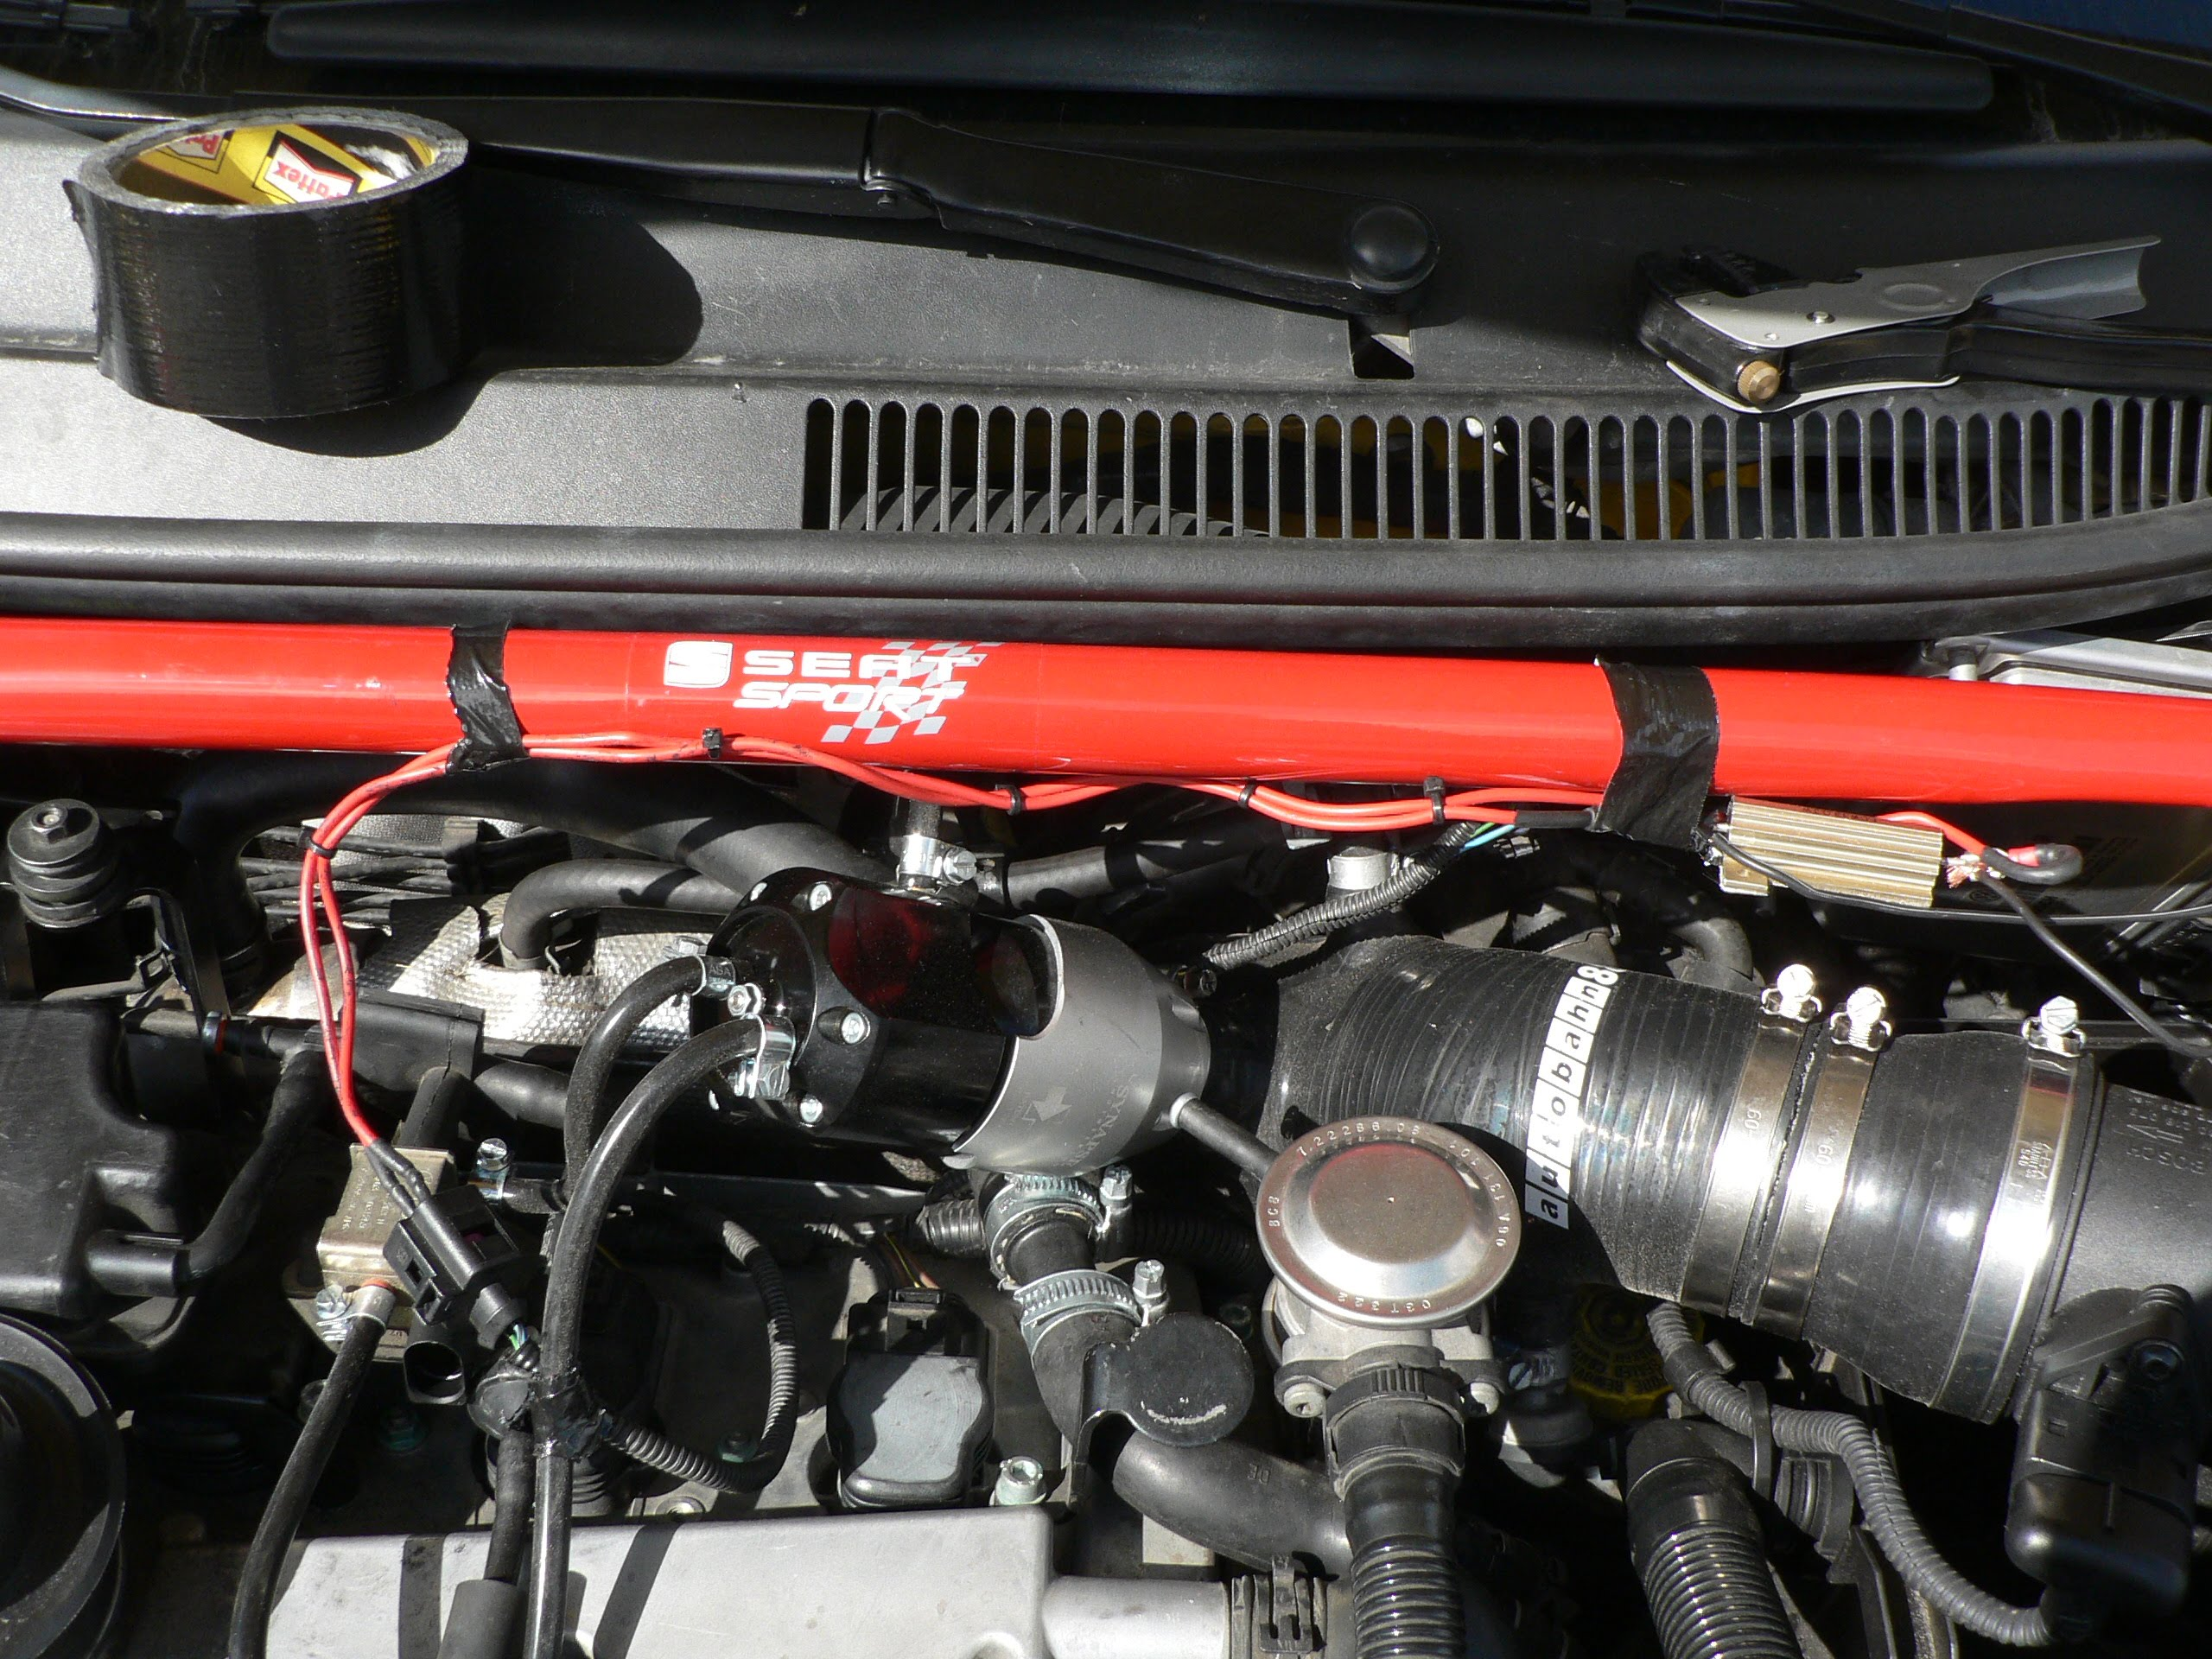 Removing N249 valve - How To Guide   Page 11   SEATCupra net